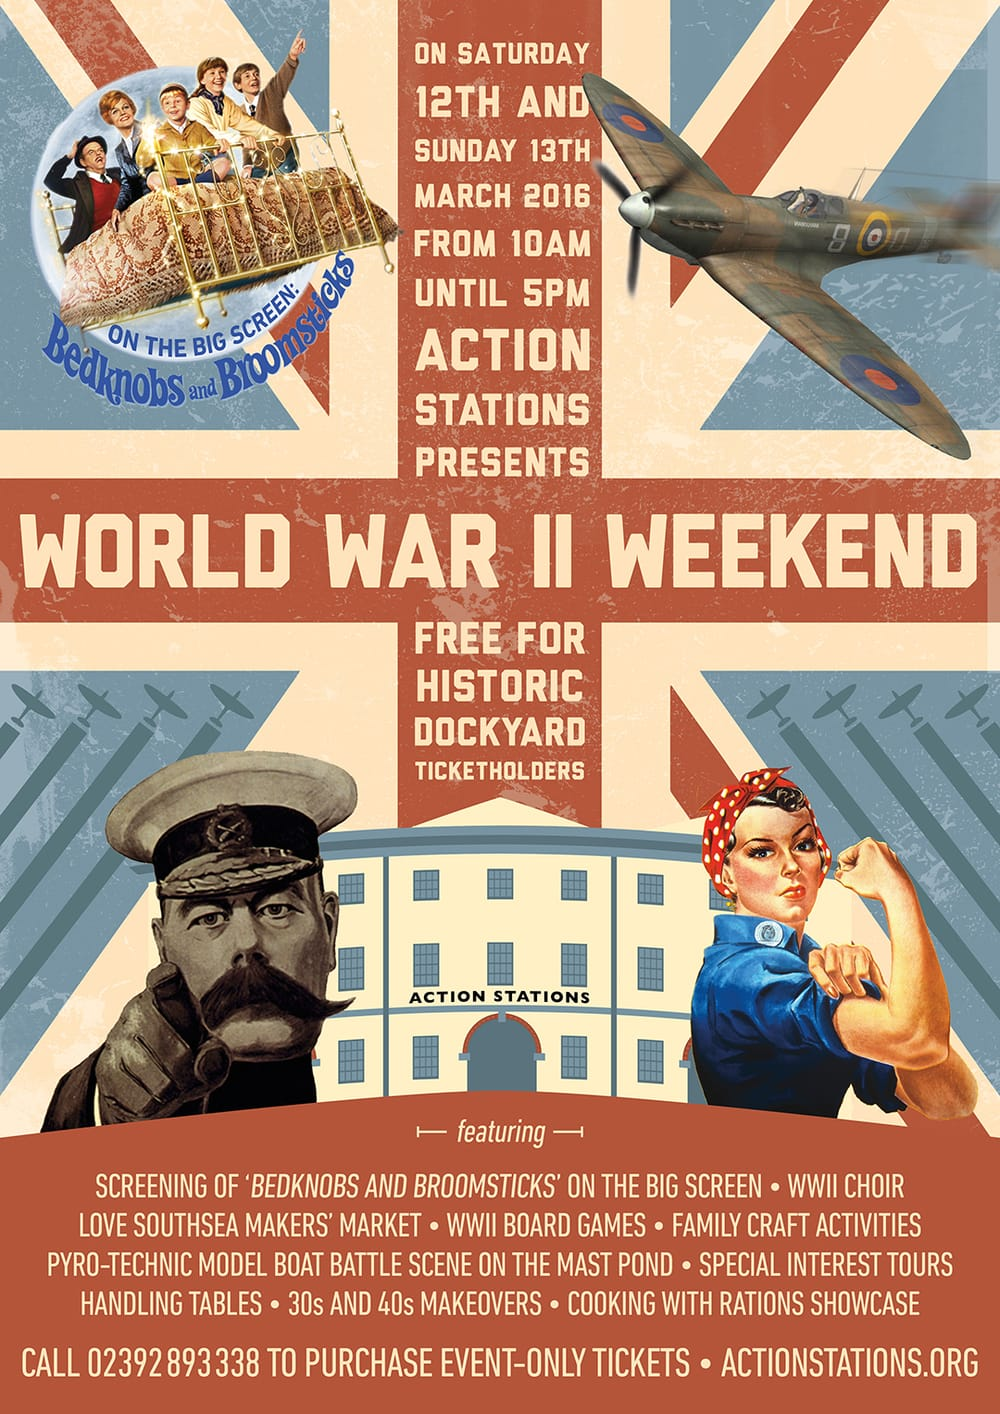 Action+Stations+WWII+Weekend.jpg